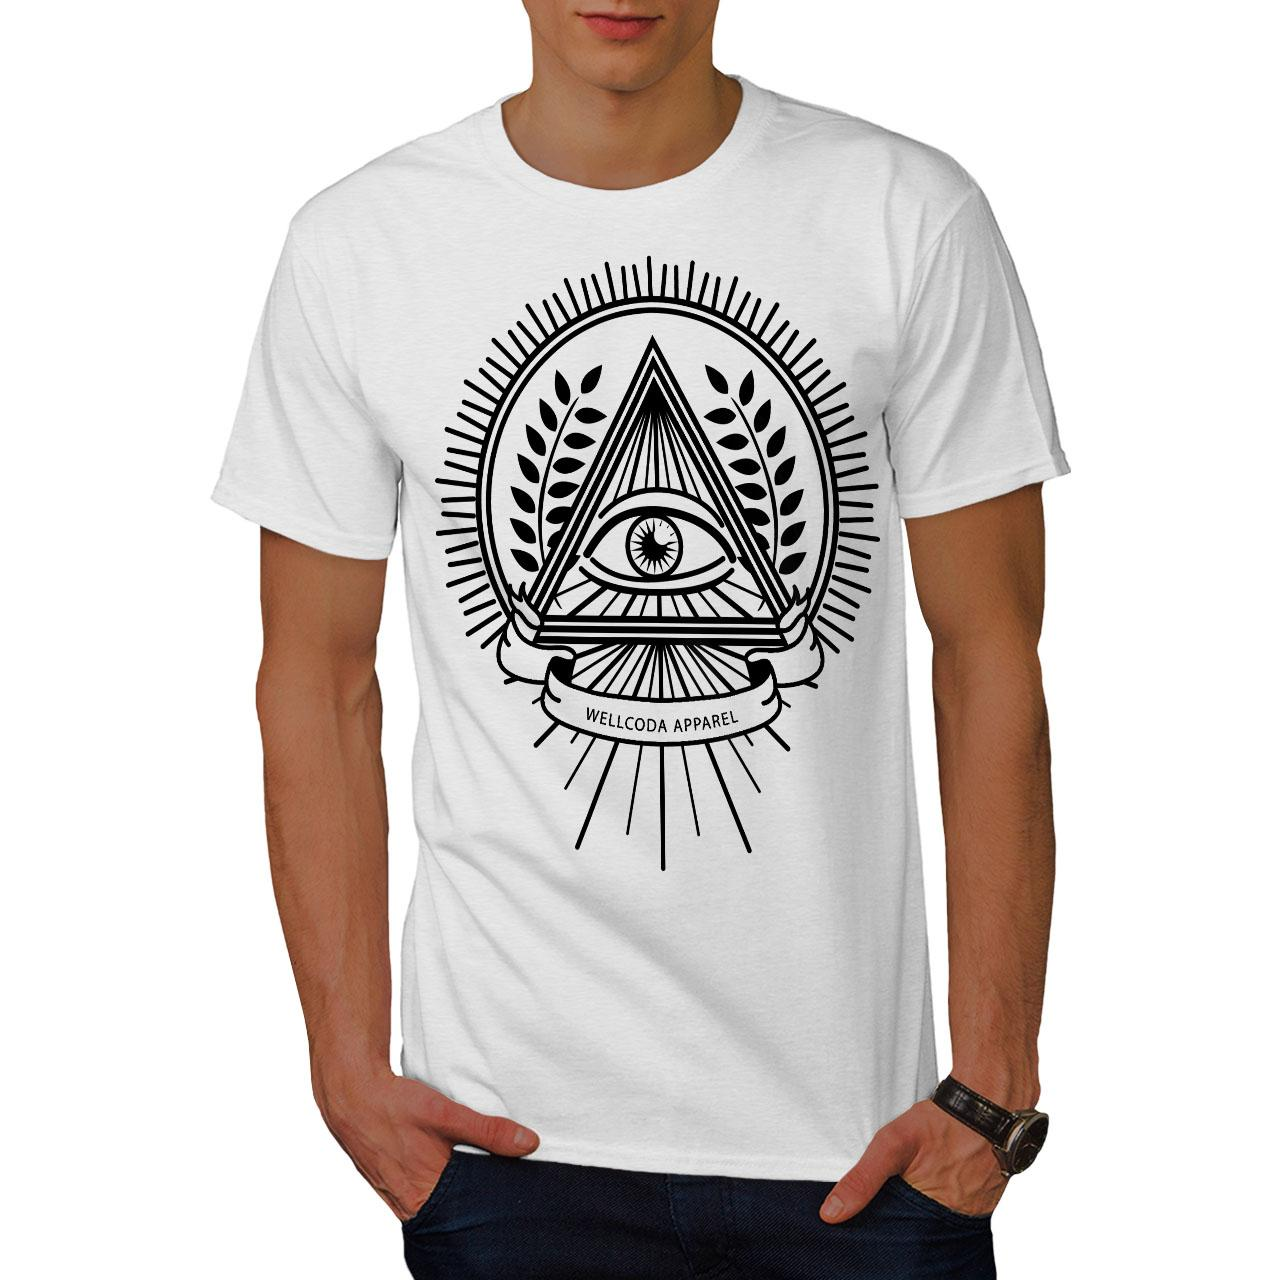 6ccd3574a2dc Wellcoda Illuminati Crest Mens T Shirt, The Eye Graphic Design Printed Tee  2018 Funny Tee 100% Cotton Cool Cute T Shirts Man Funny Slogan T Shirts  Cool ...